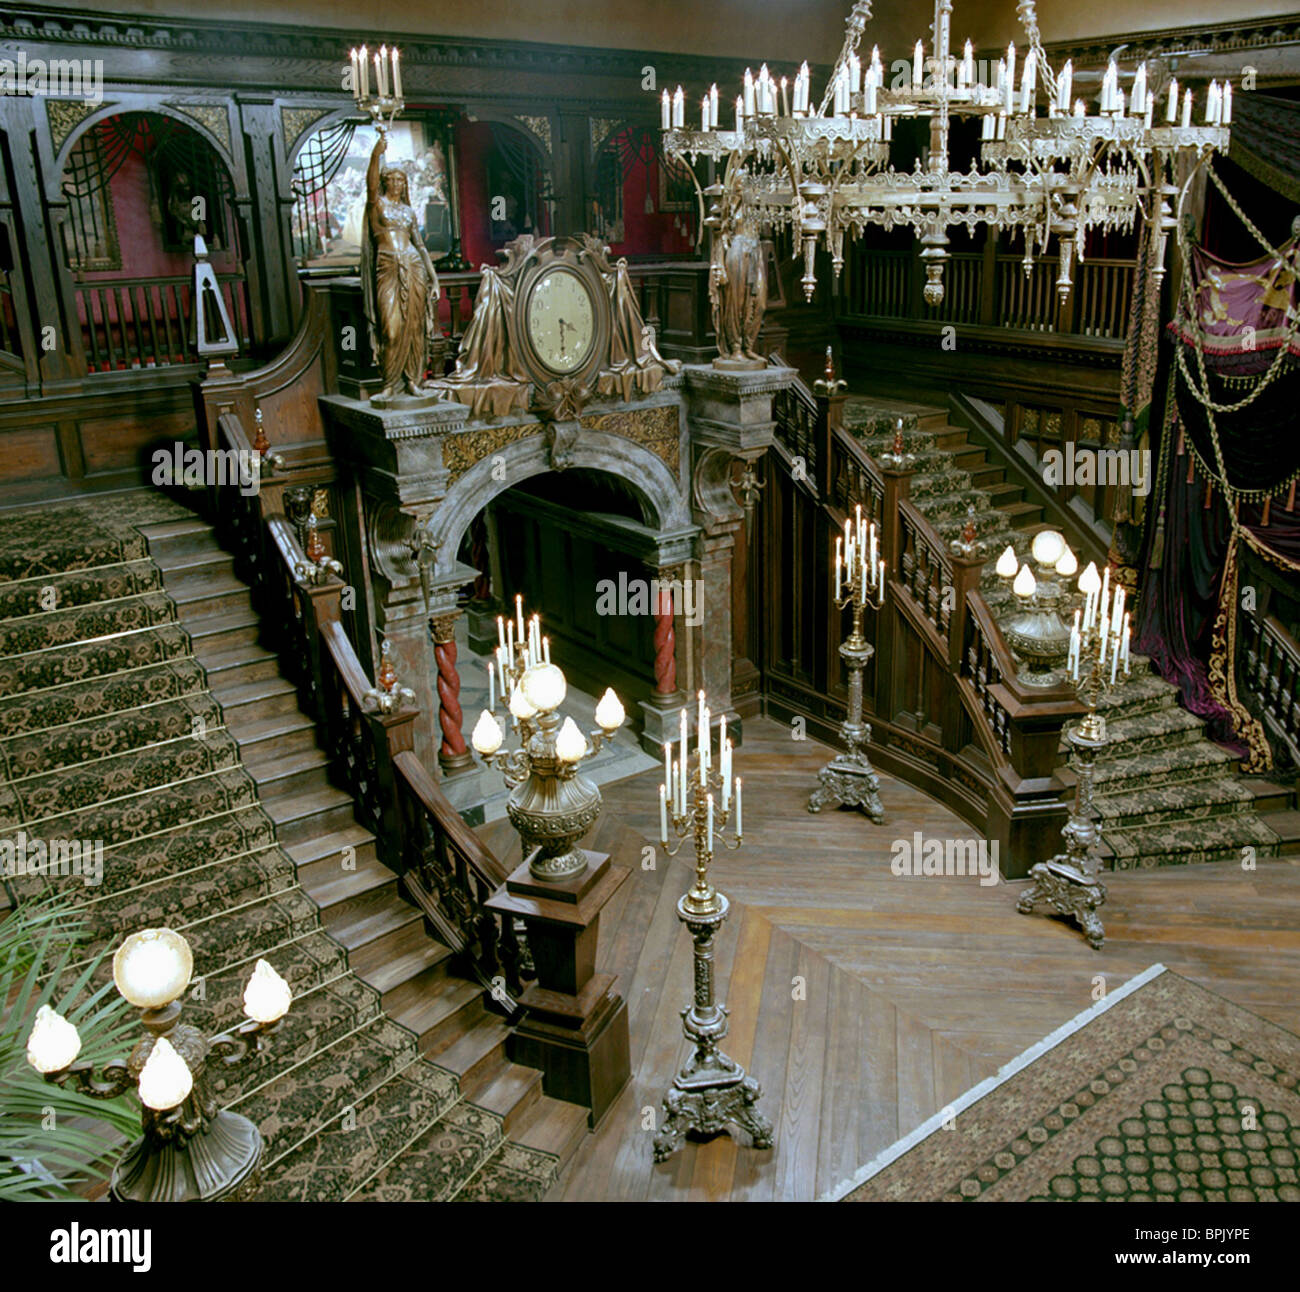 MANSION HALLWAY & STAIRWAY THE HAUNTED MANSION (2003) - Stock Image